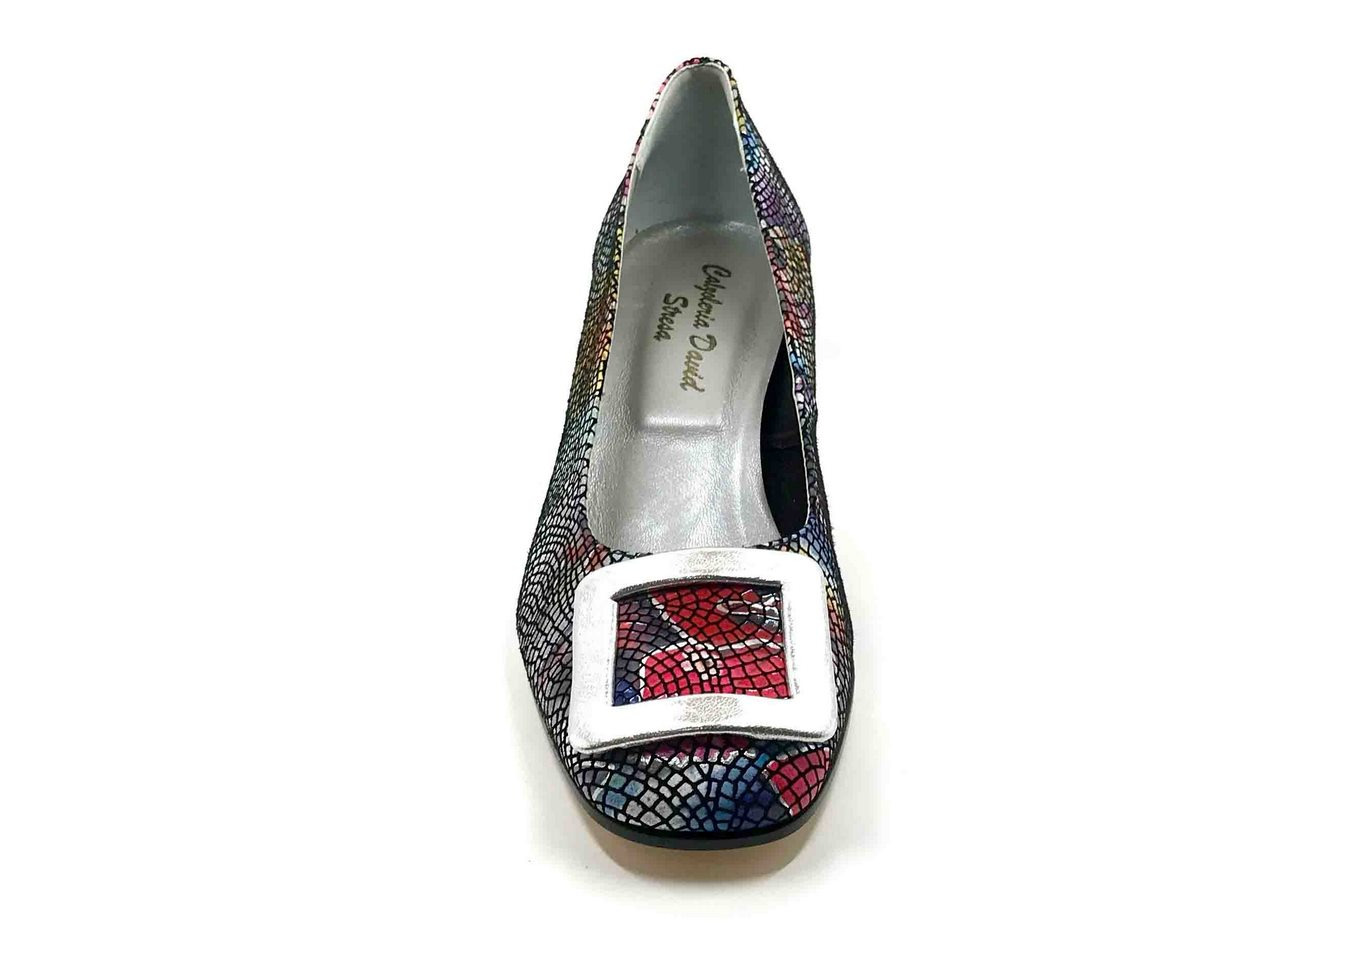 Décolleté Heel 5cm upper in Leather silkscreened Lawn Black, heel and buckle in Silver calfskin